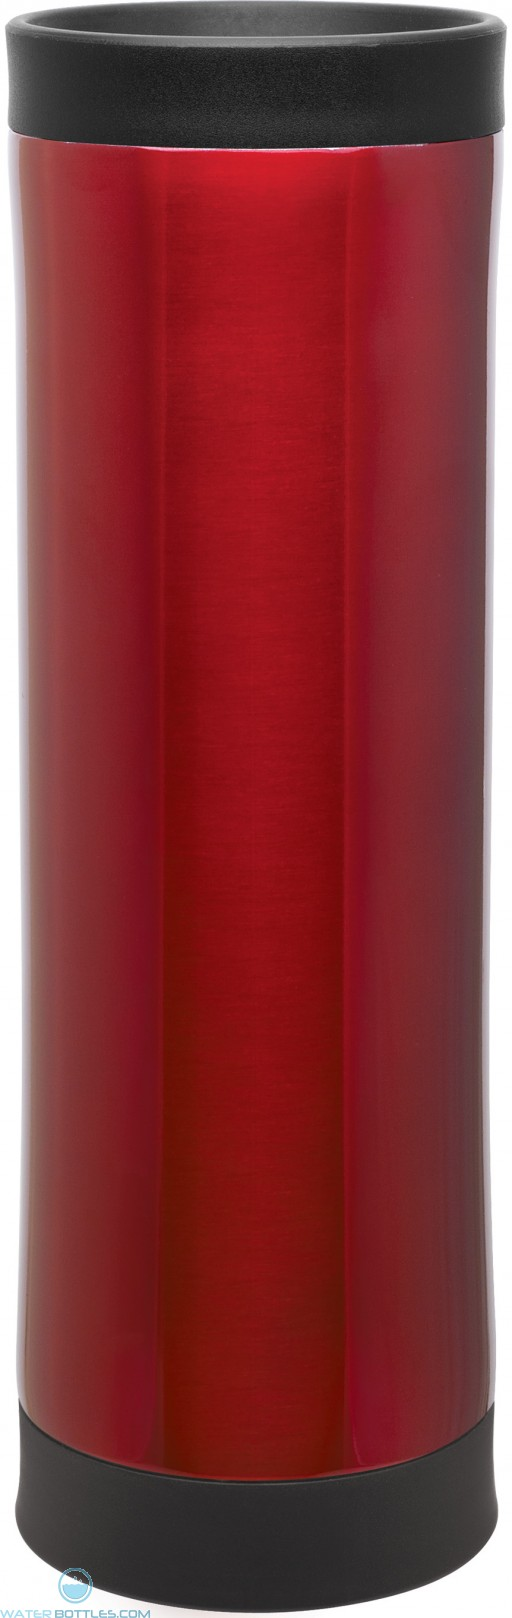 Americano Double Wall Thermal Tumblers | 16 oz - Red